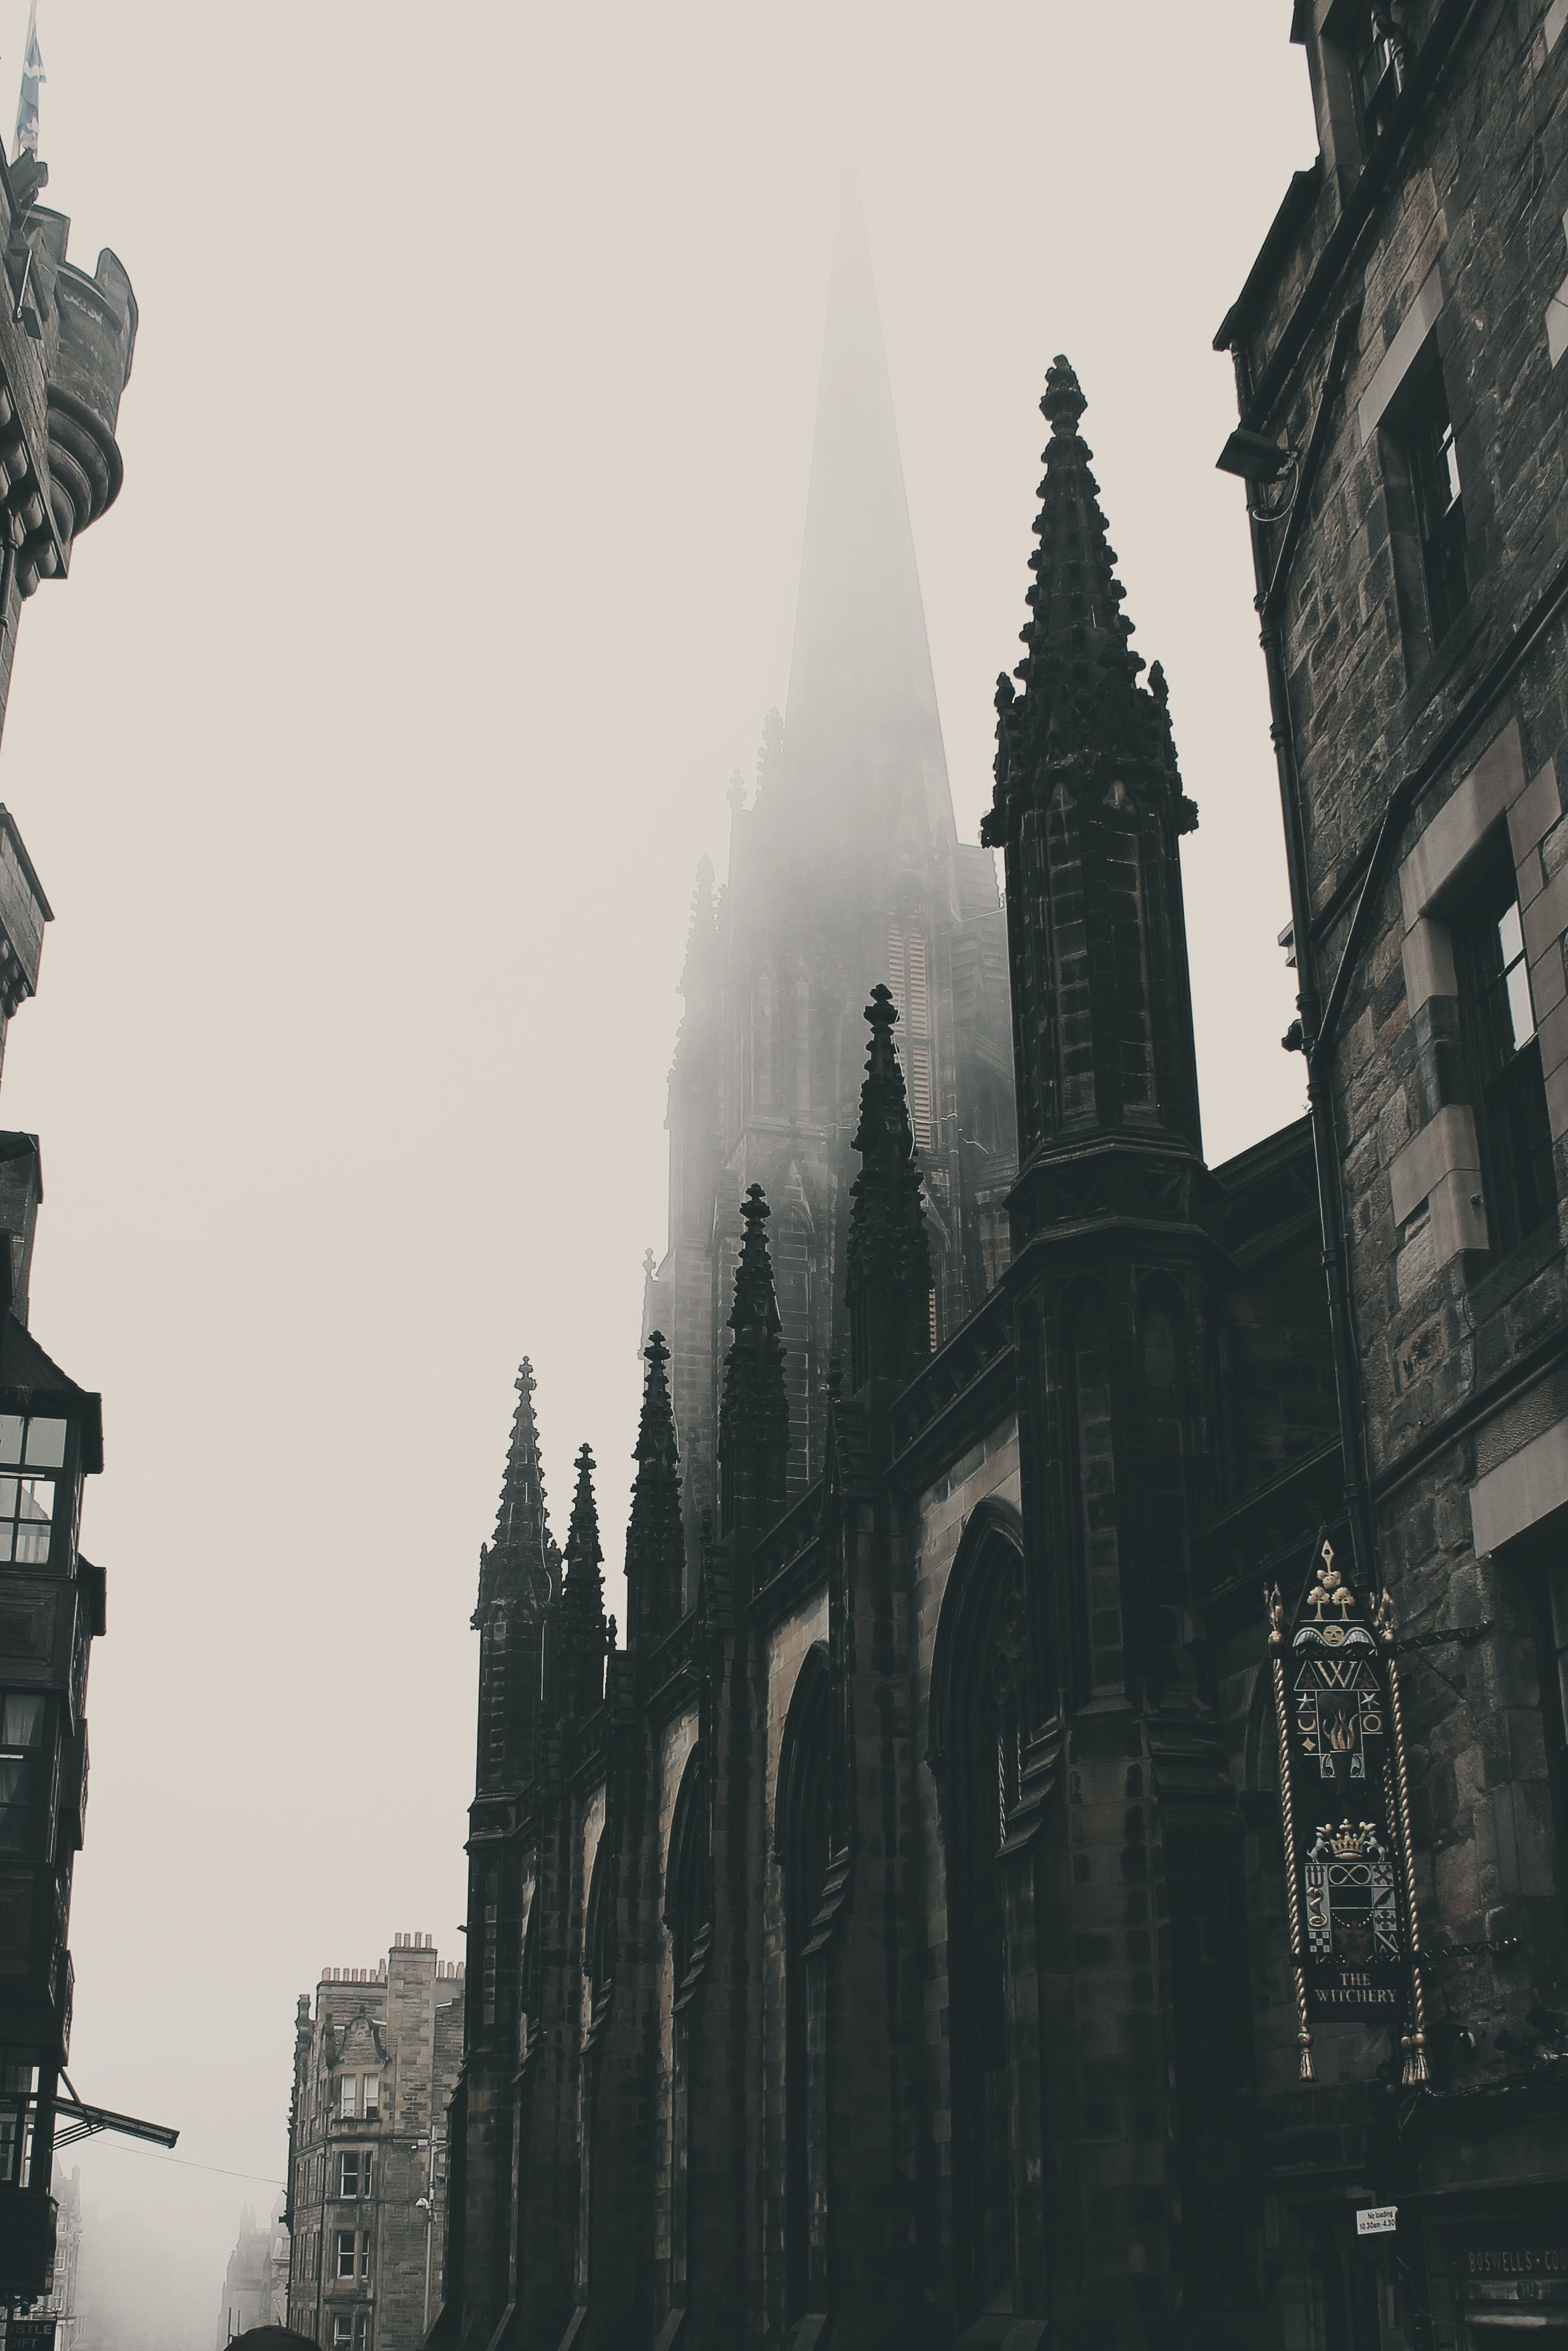 Monochromatic gothic cathedrals line the history streets of Edinburgh